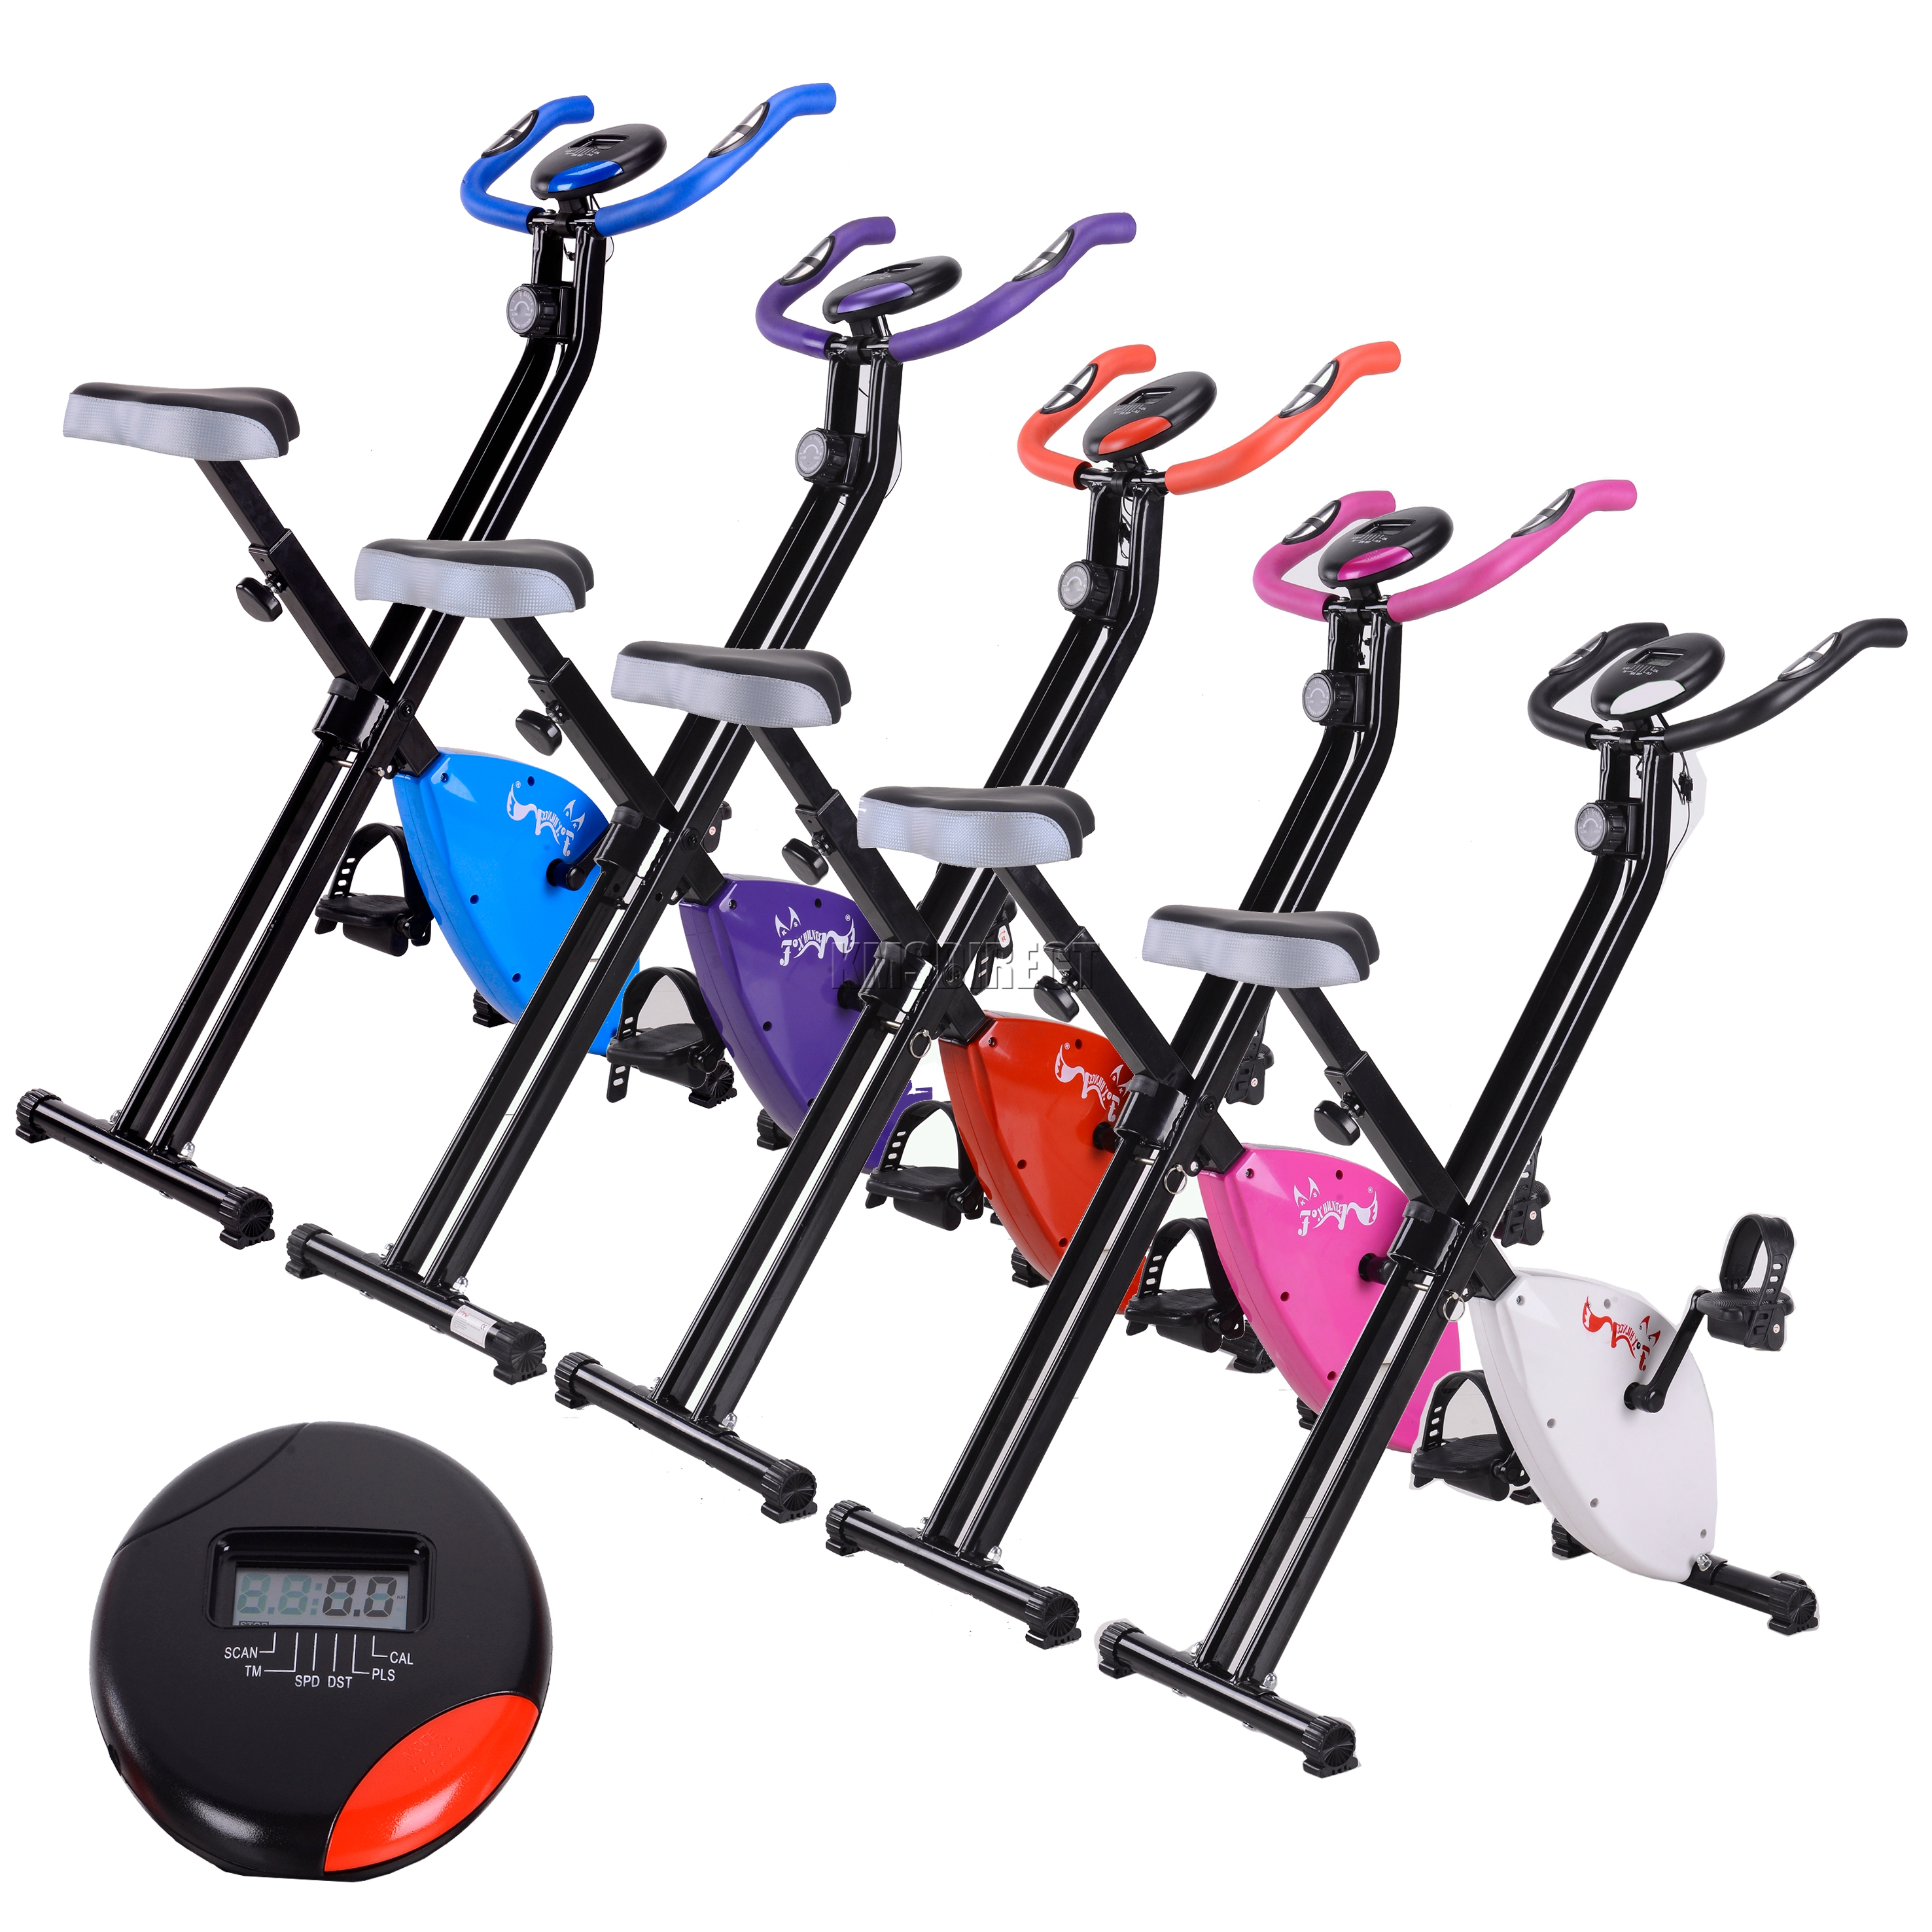 Exercise Bike Folding Magnetic X-Bike Fitness Cardio Workout Weight Loss Machine